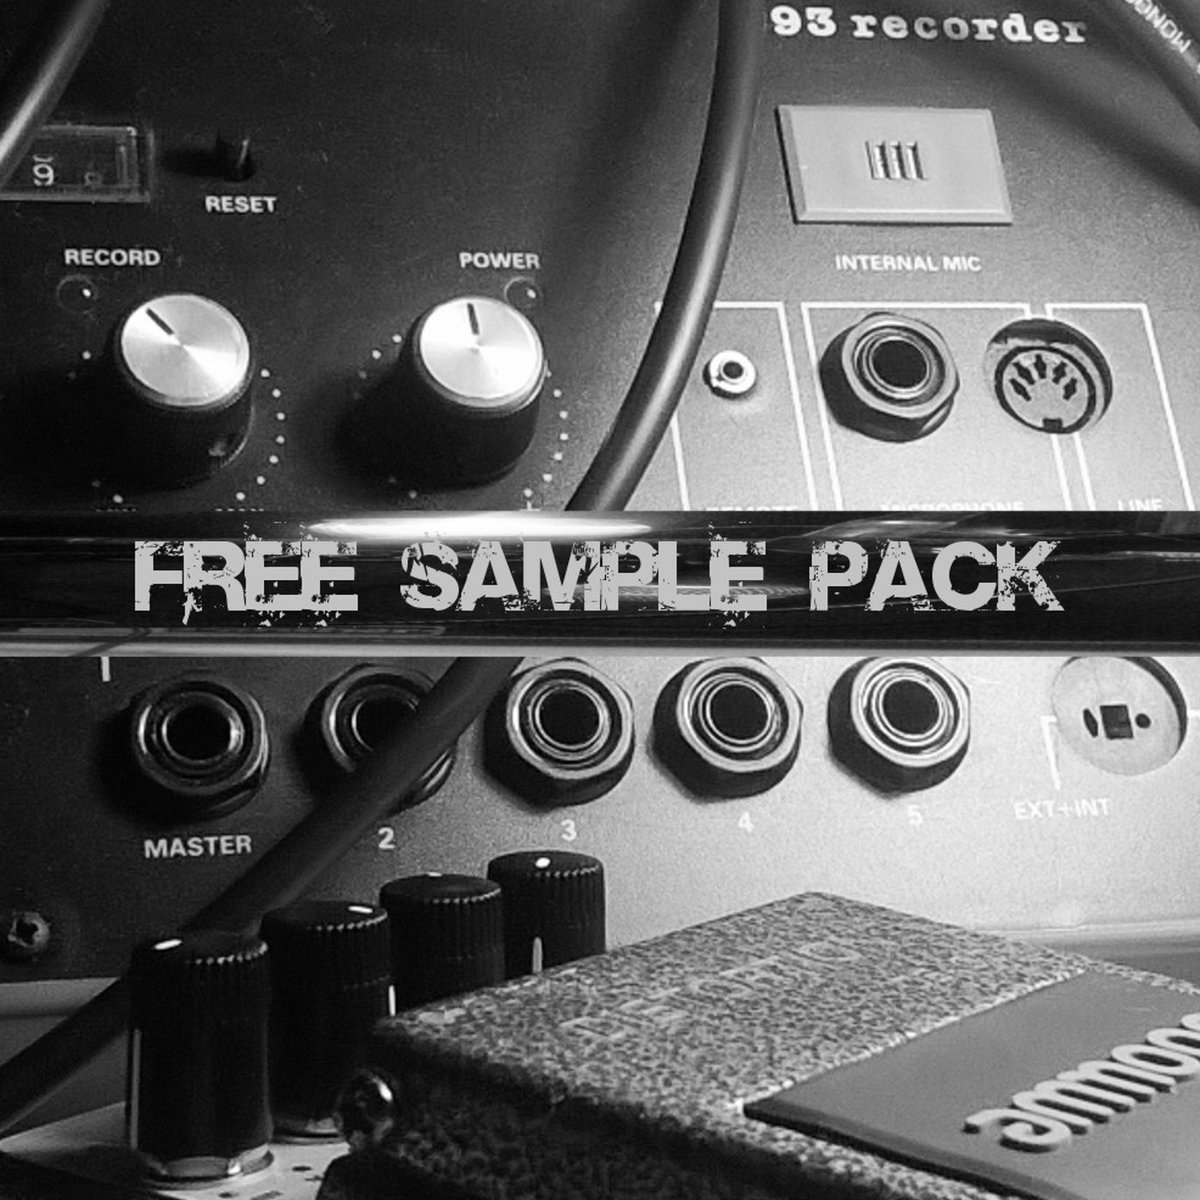 free sample pack sleeper